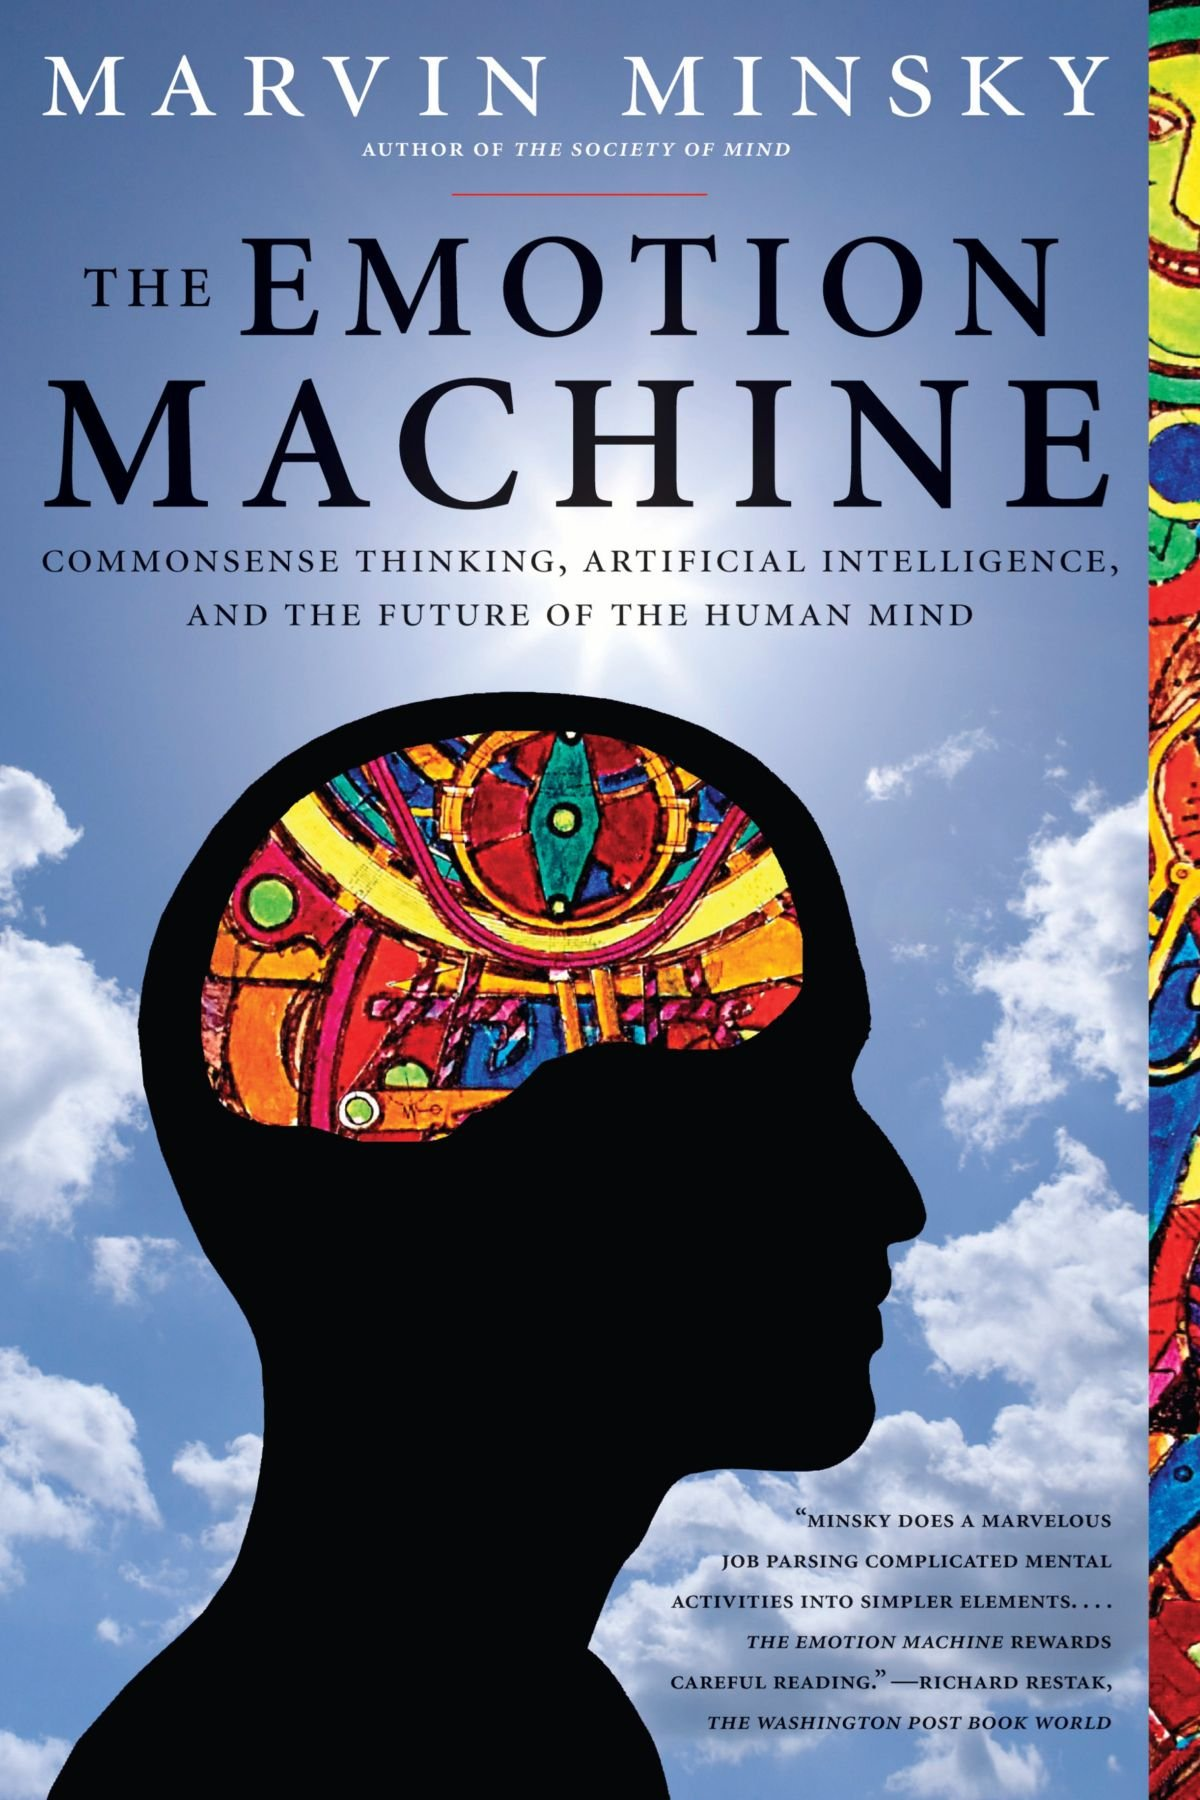 Read The Emotion Machine Commonsense Thinking Artificial